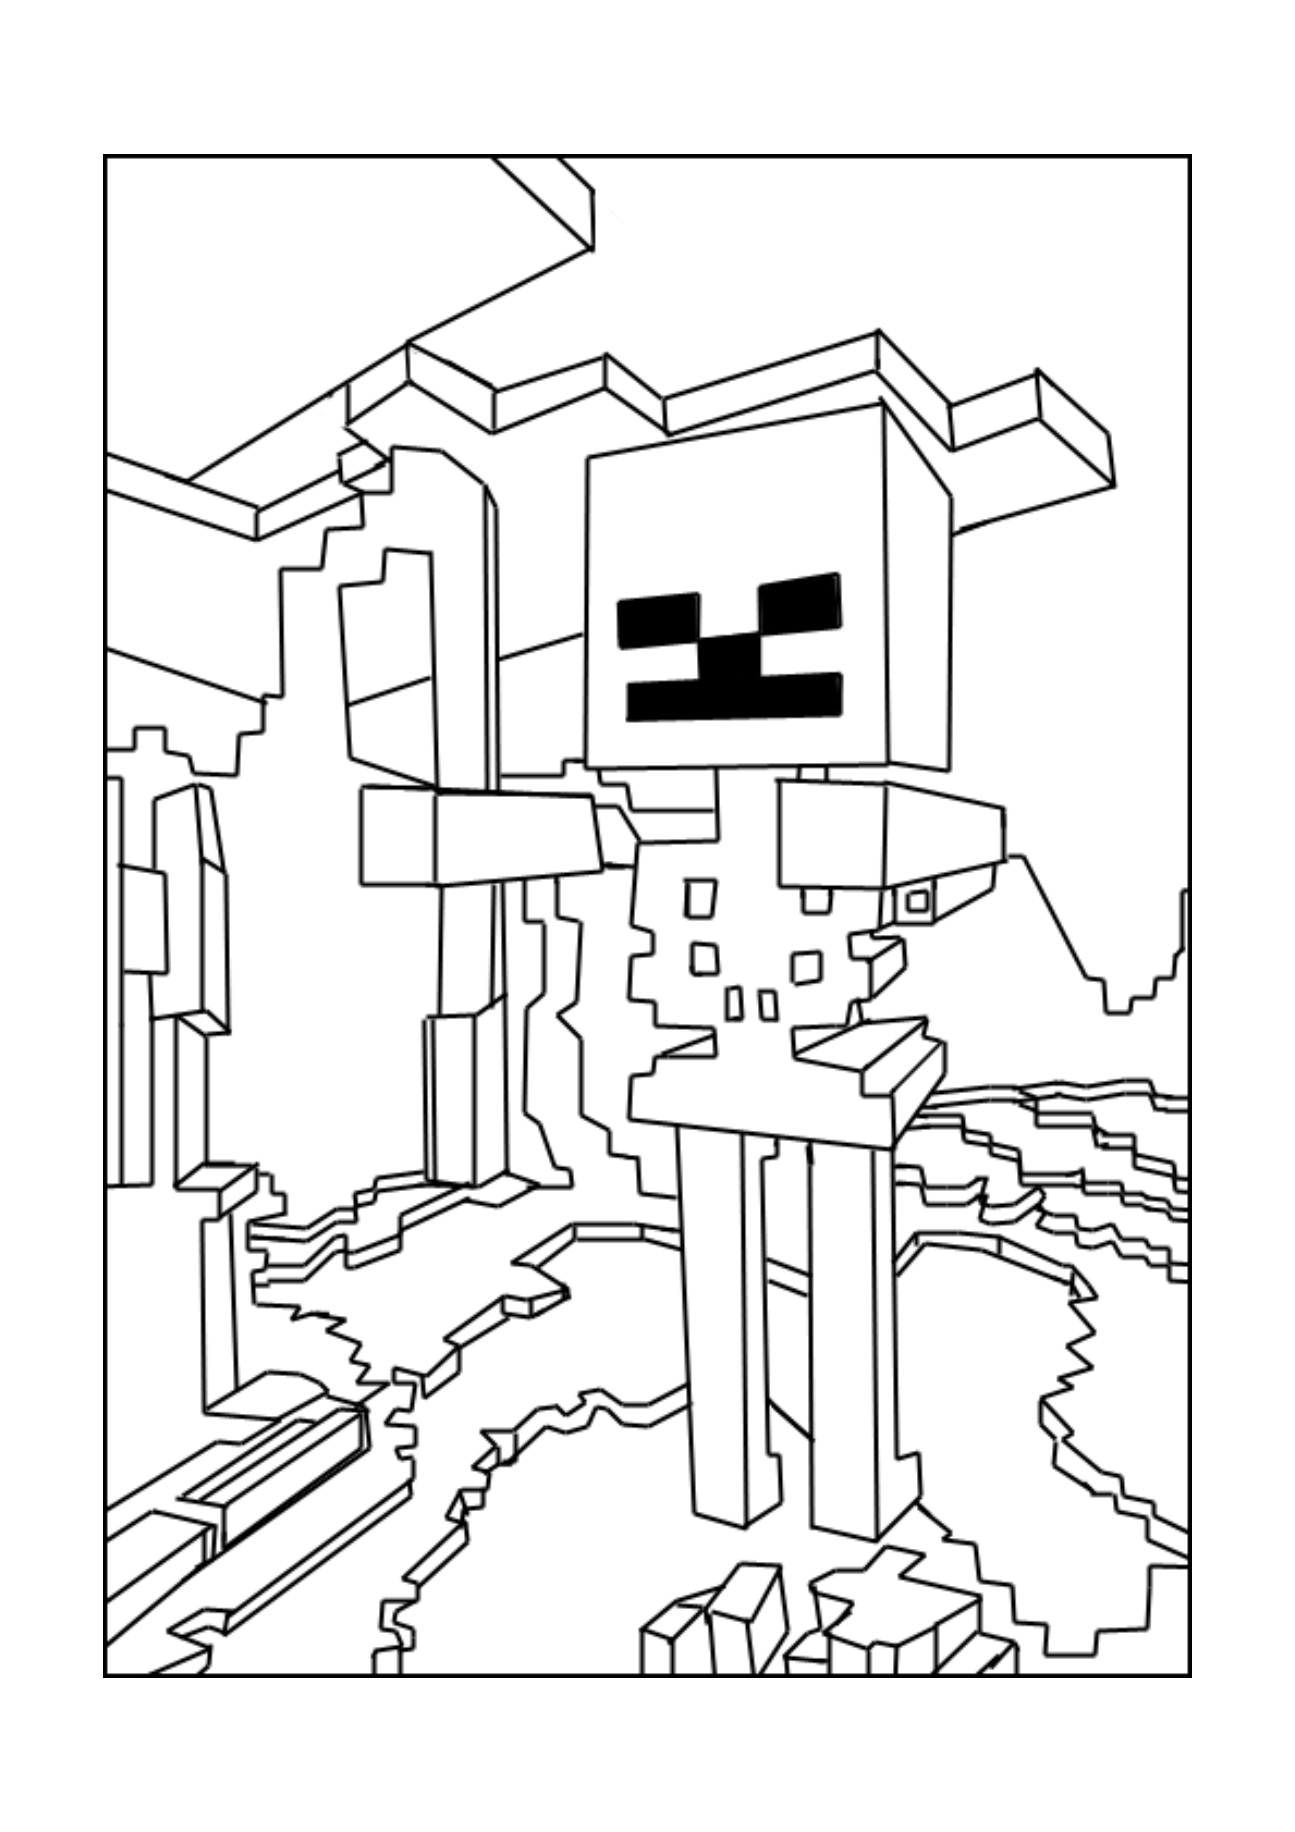 Minecraft Skeleton | A Printable, Free Coloring Picture ...